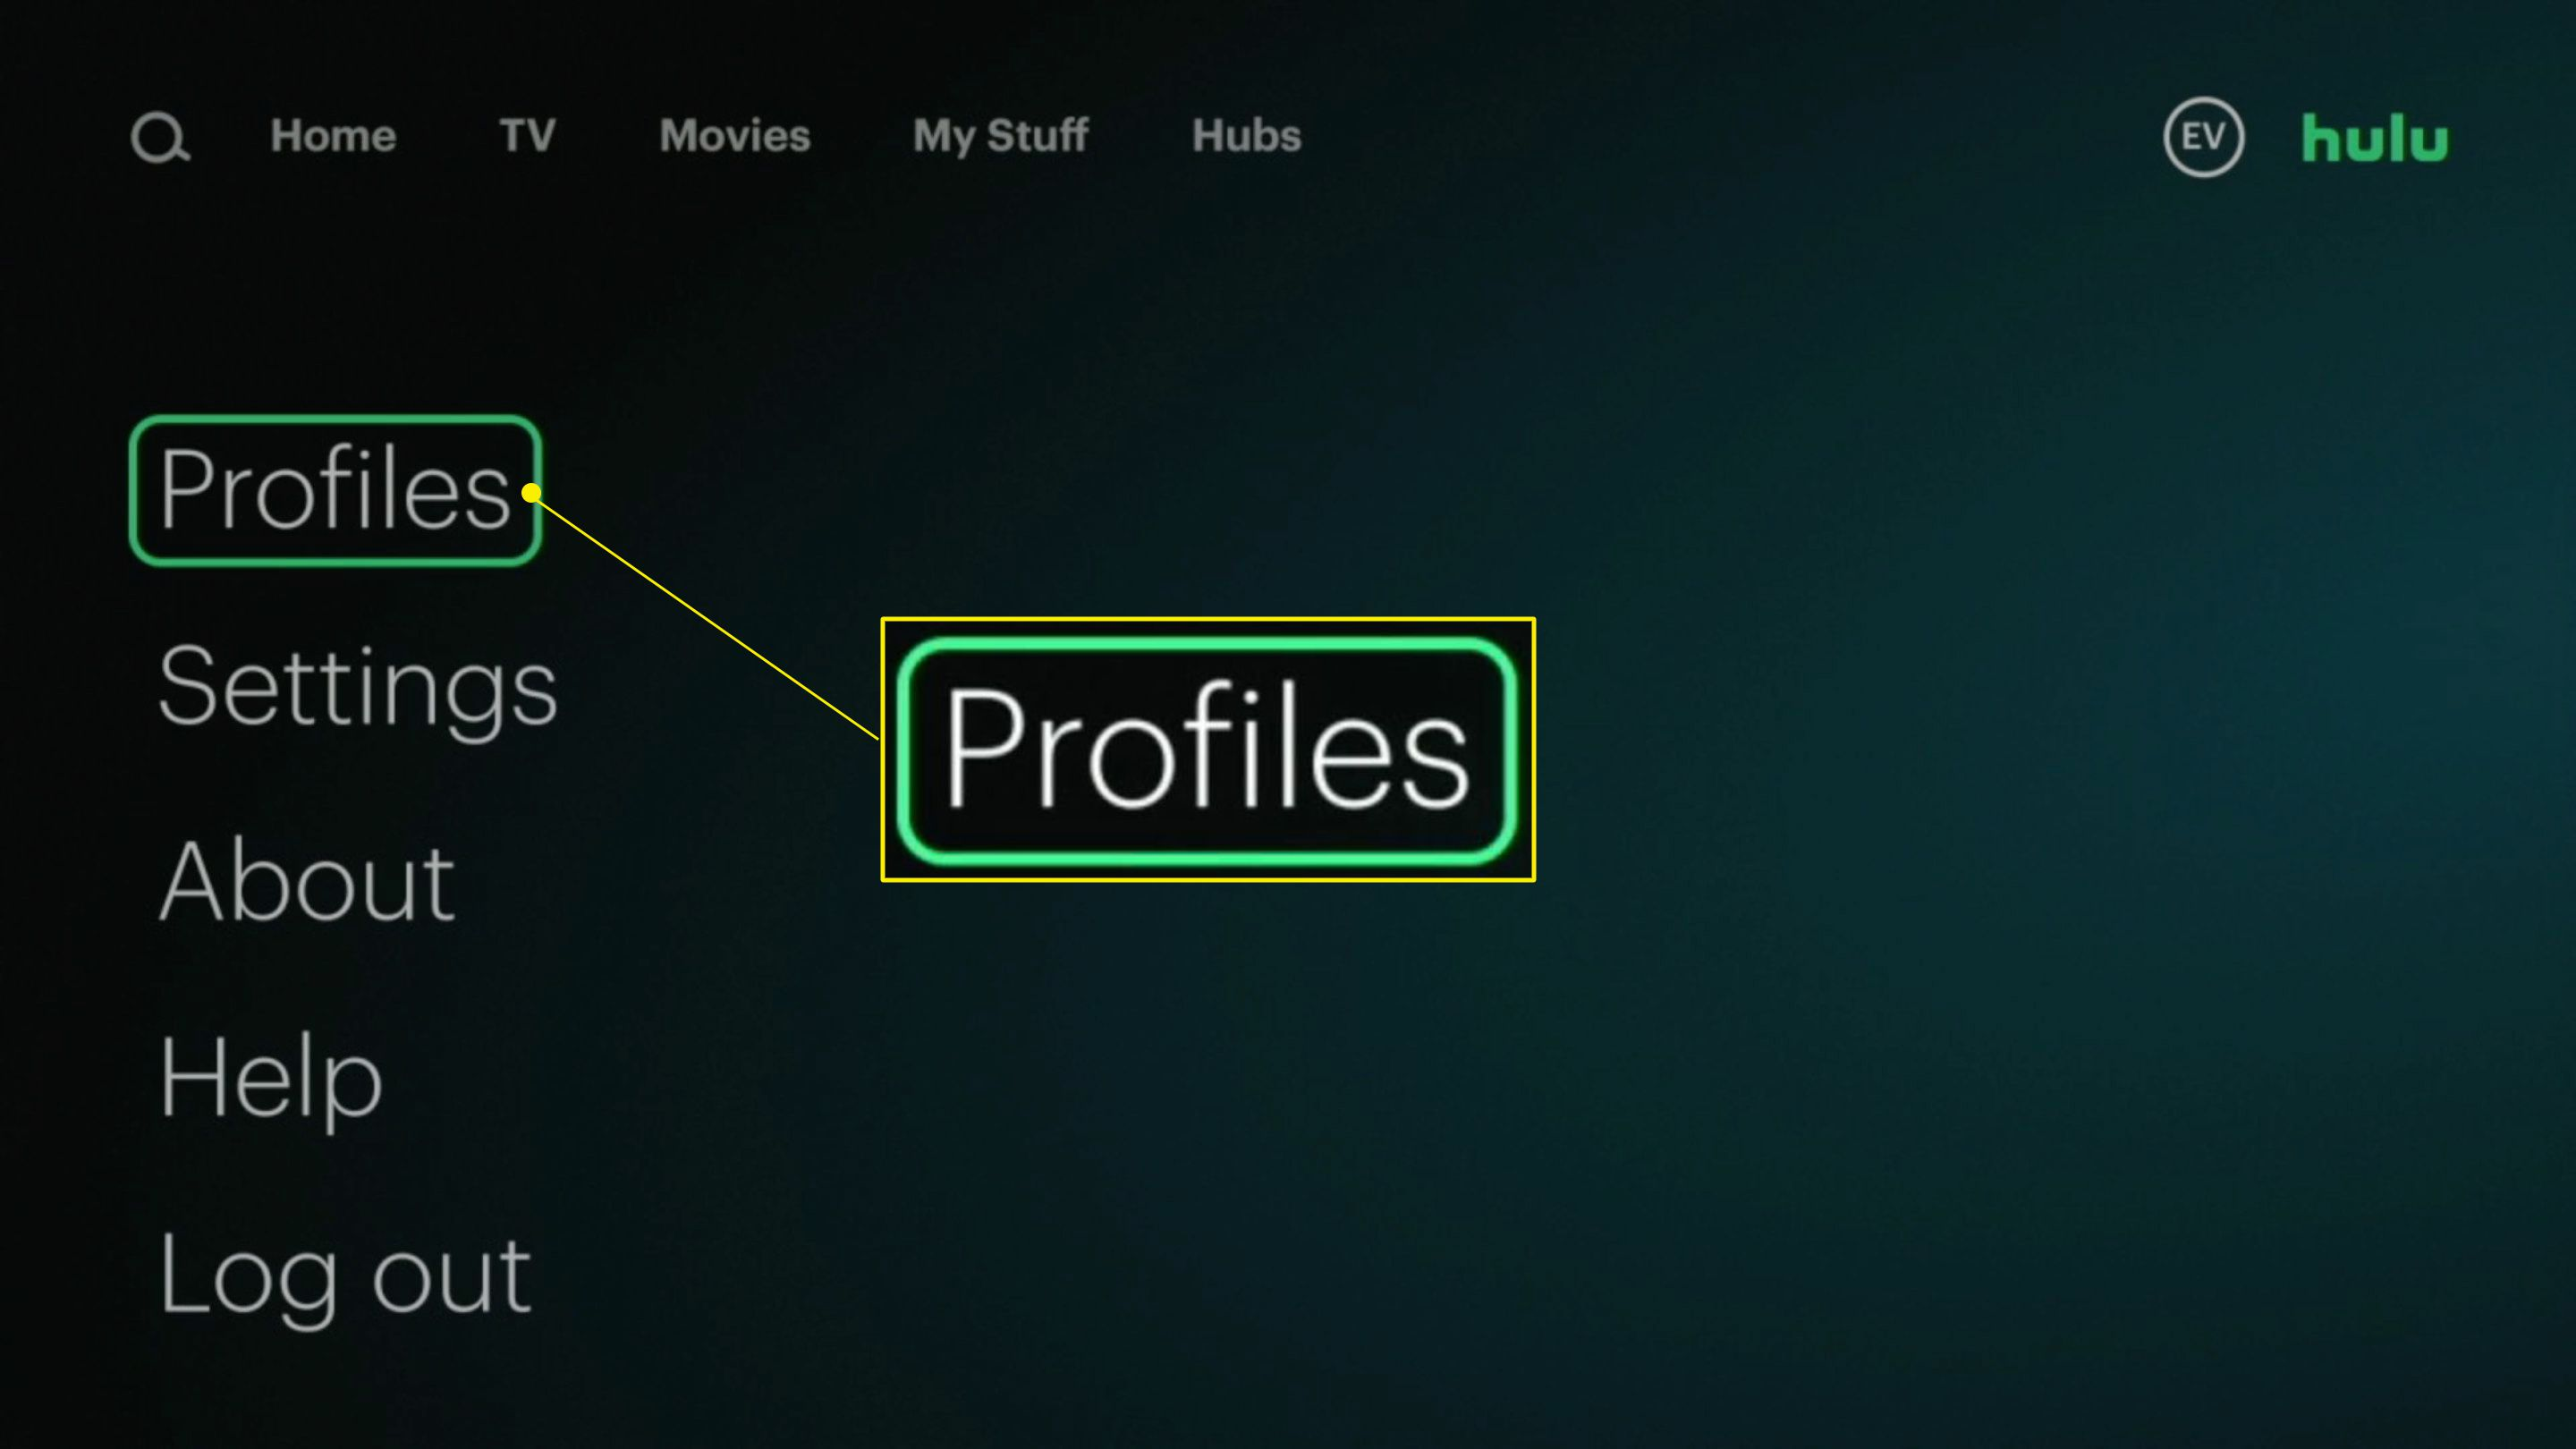 The Profiles option highlighted in the Hulu app